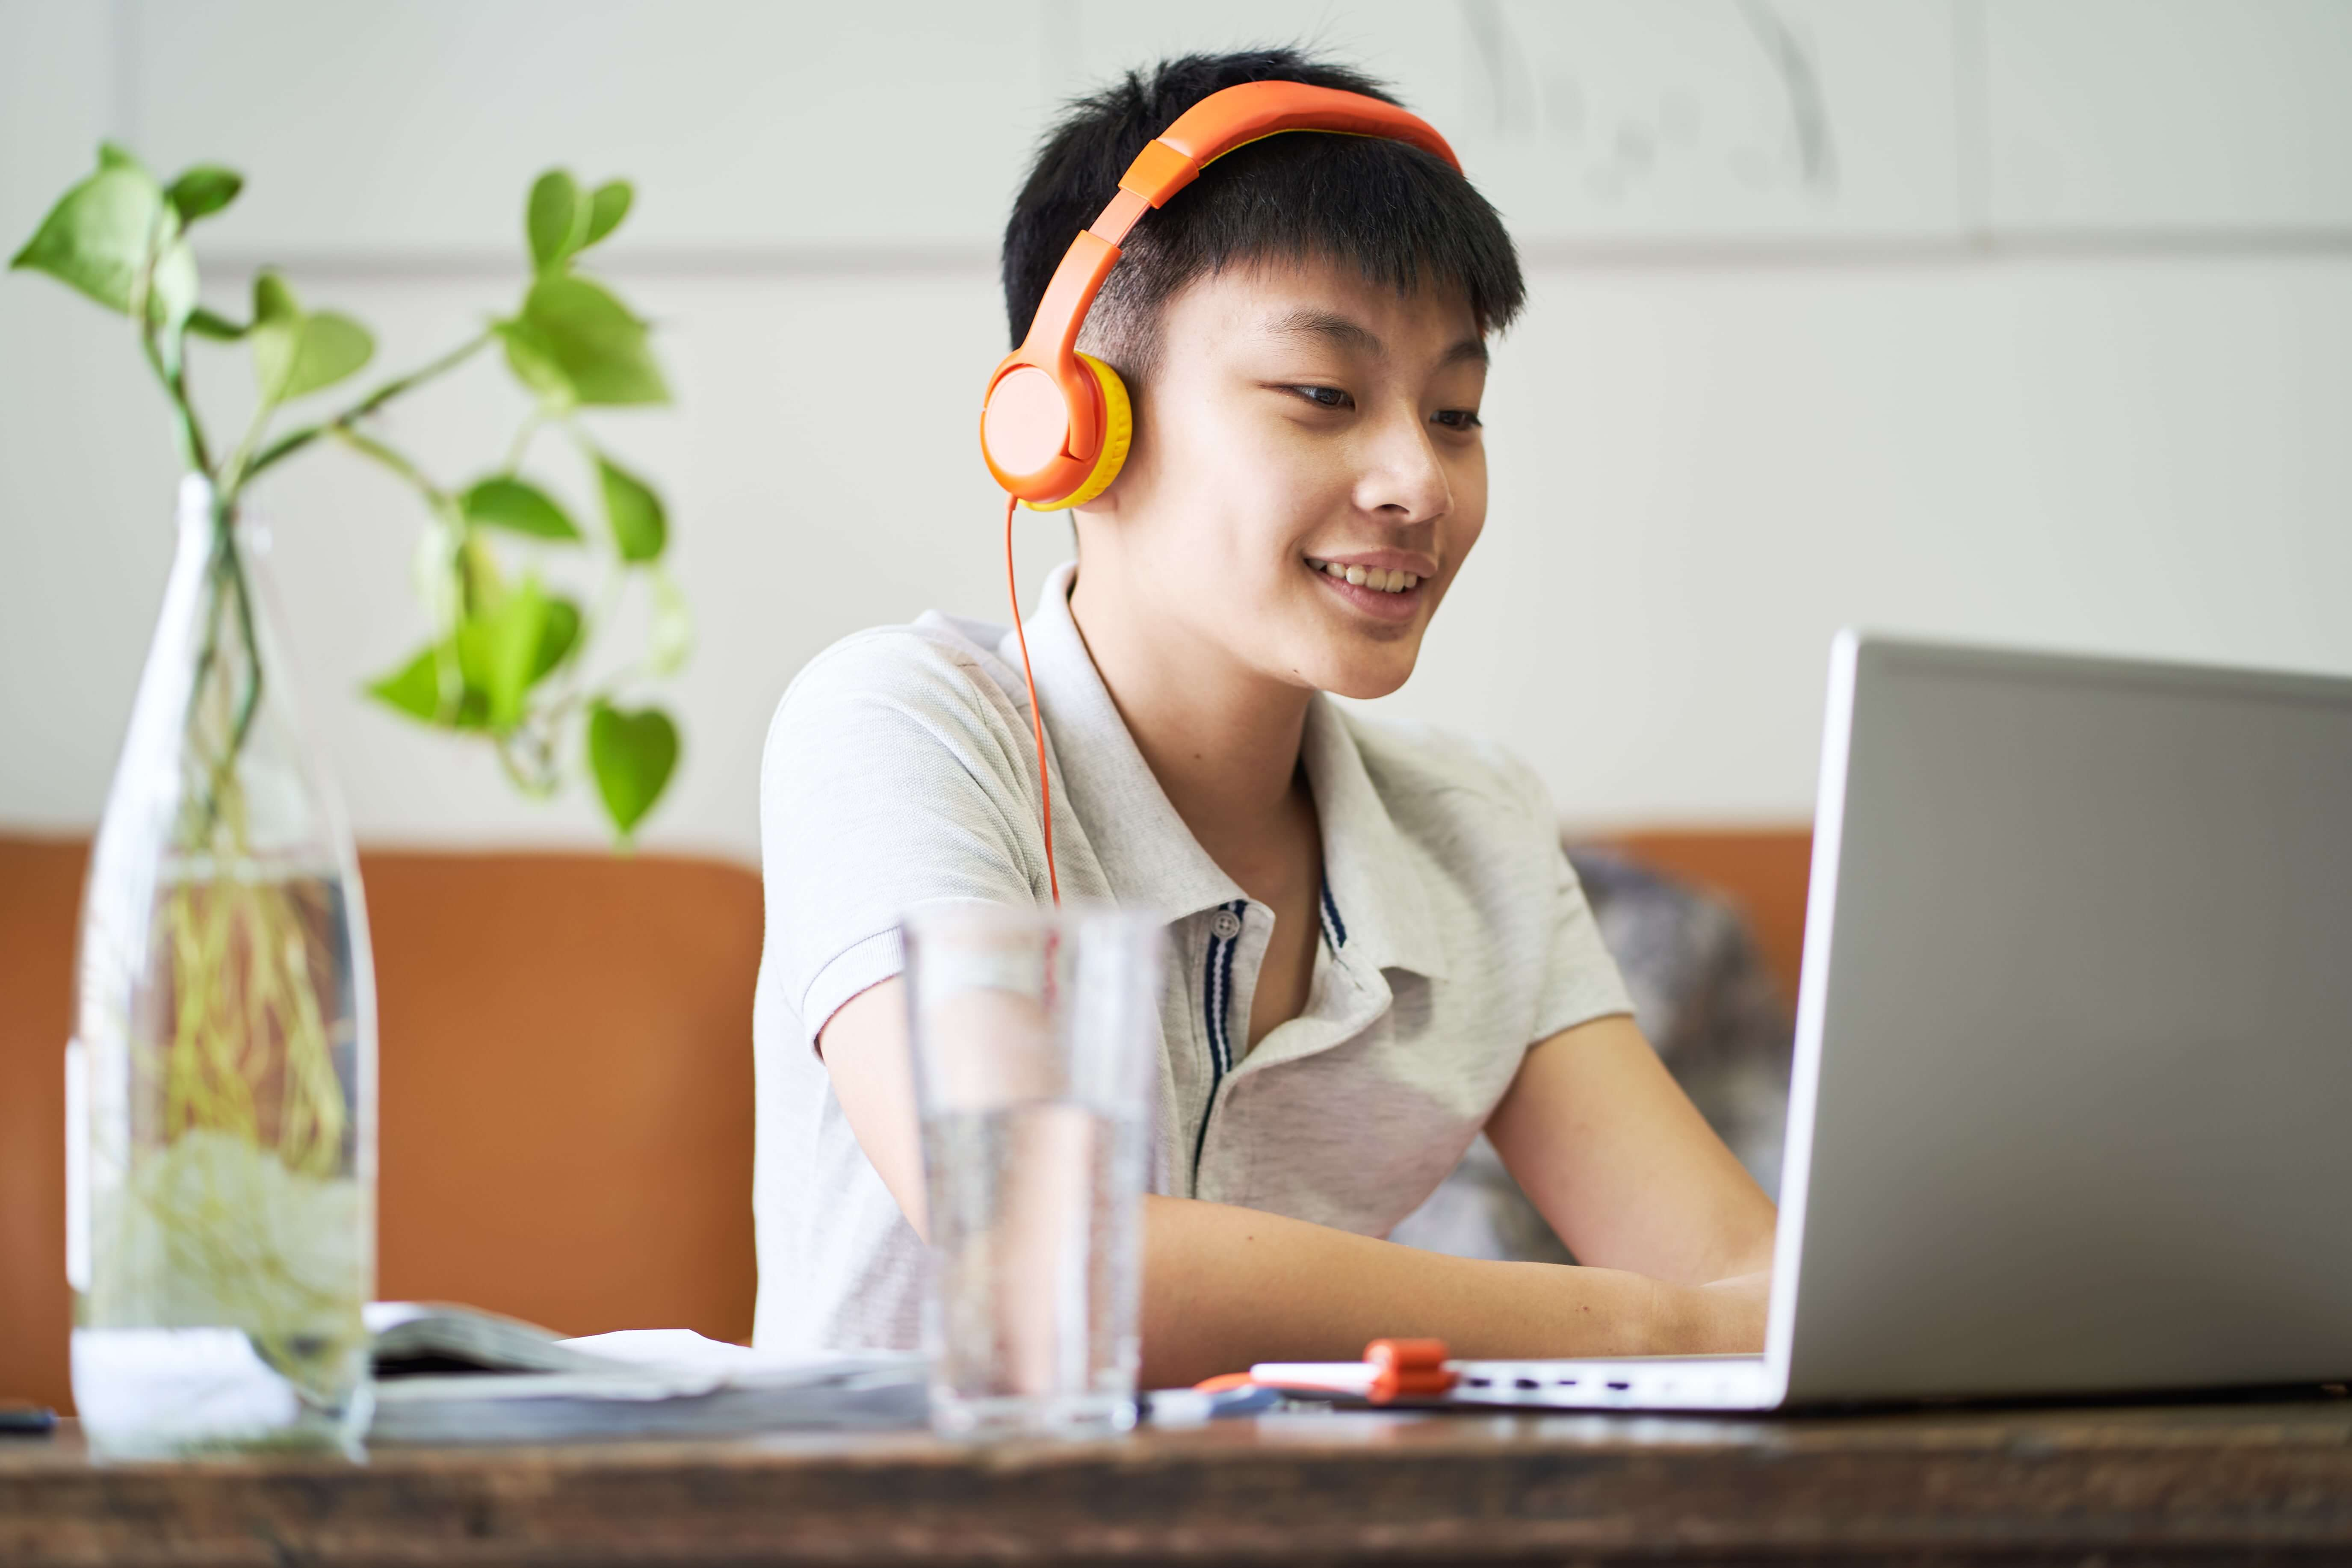 Asian teenage boy wearing headphone and working on a laptop computer